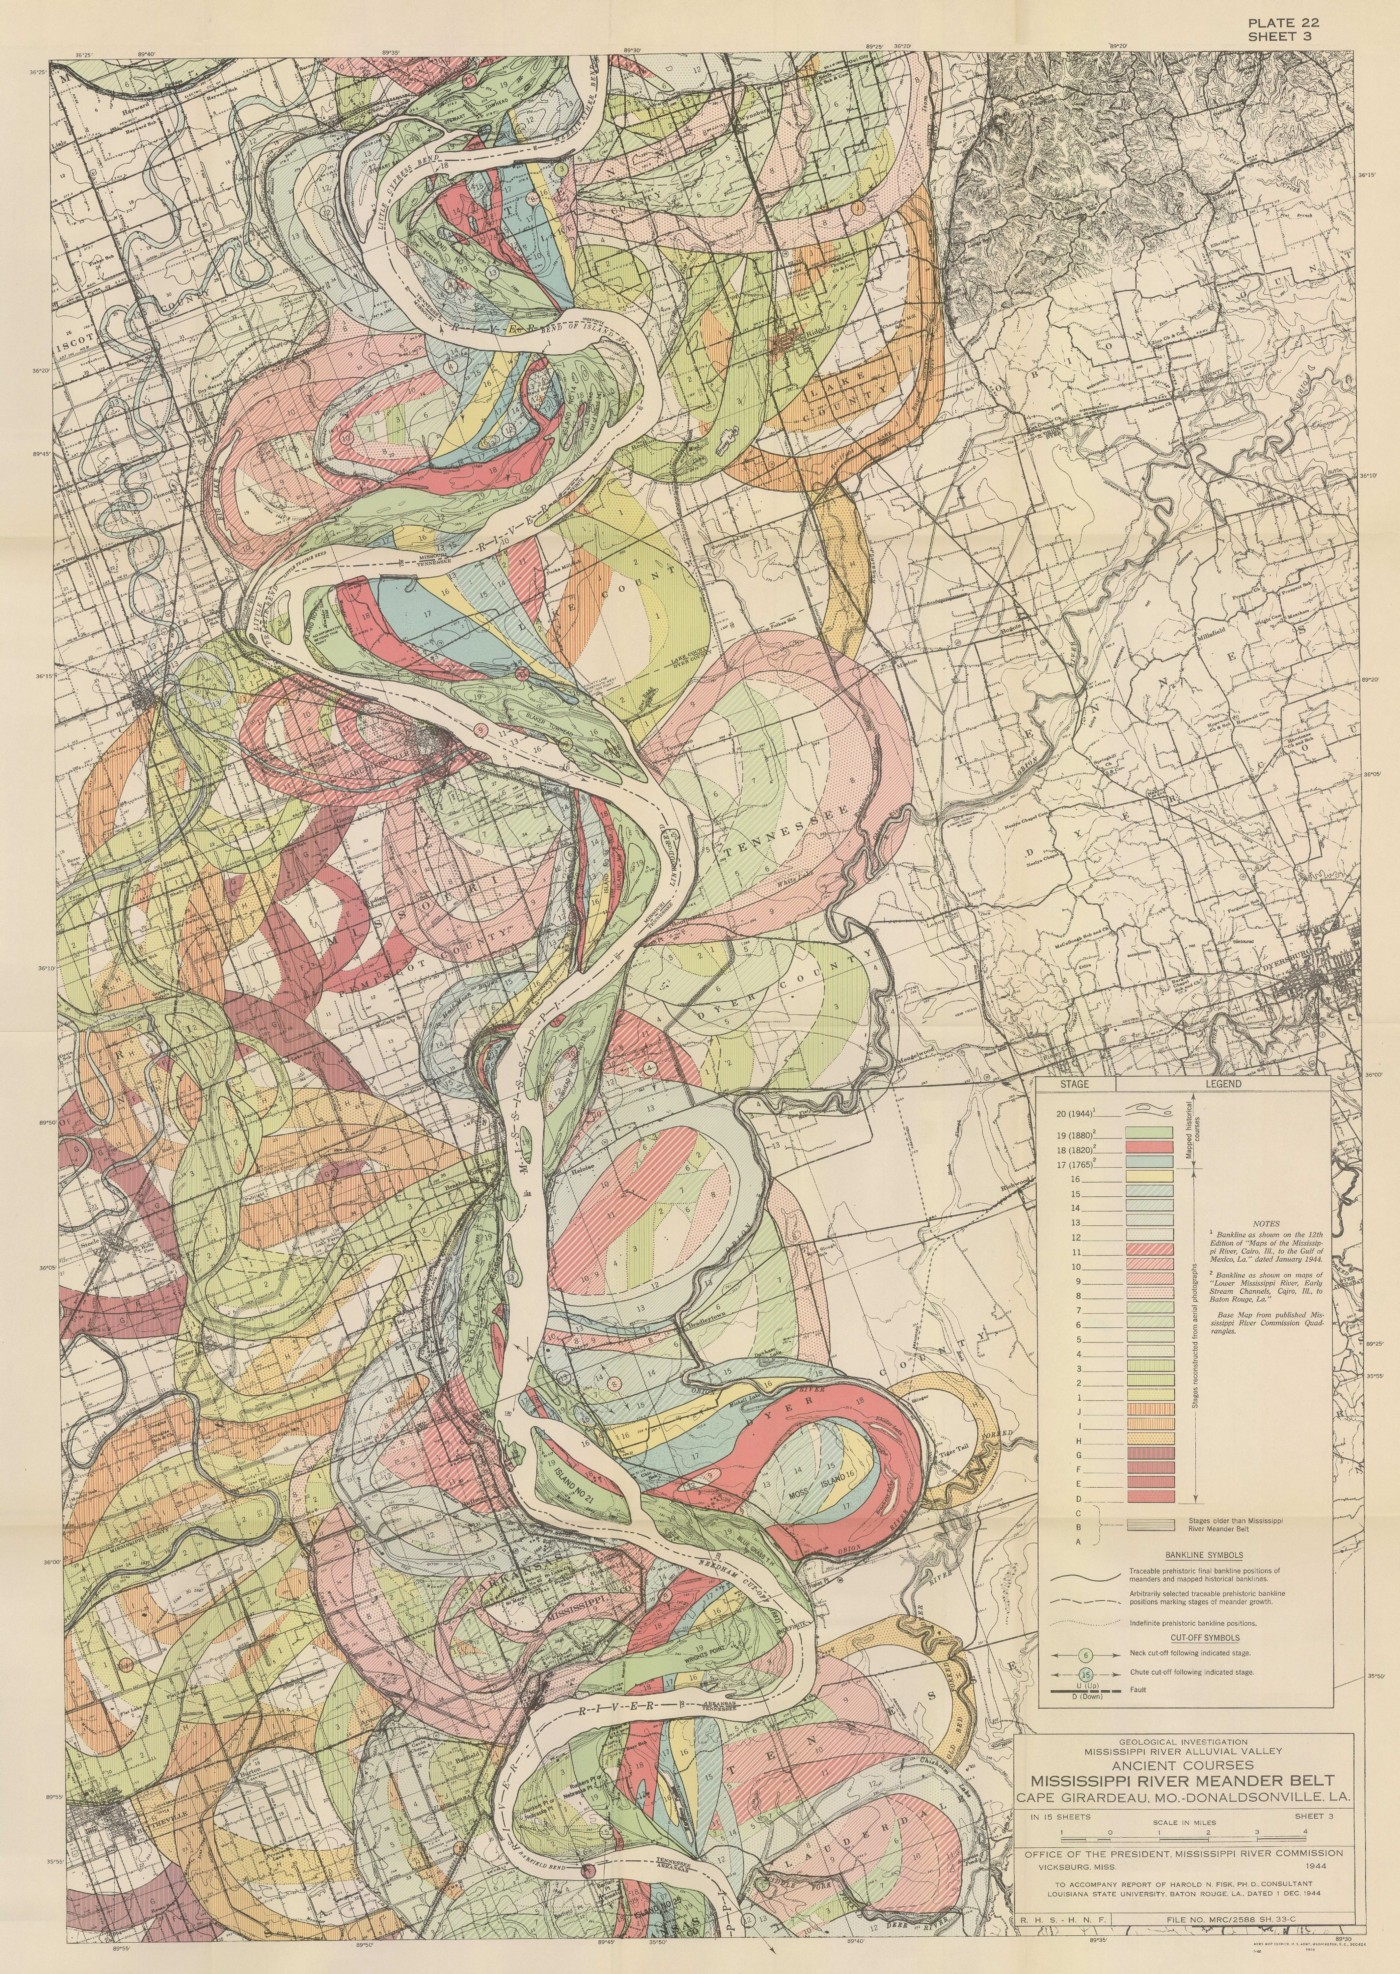 A 'Meander map' of the Mississippi River over time. Created by Harold Fisk for Army Corp of Engineers.